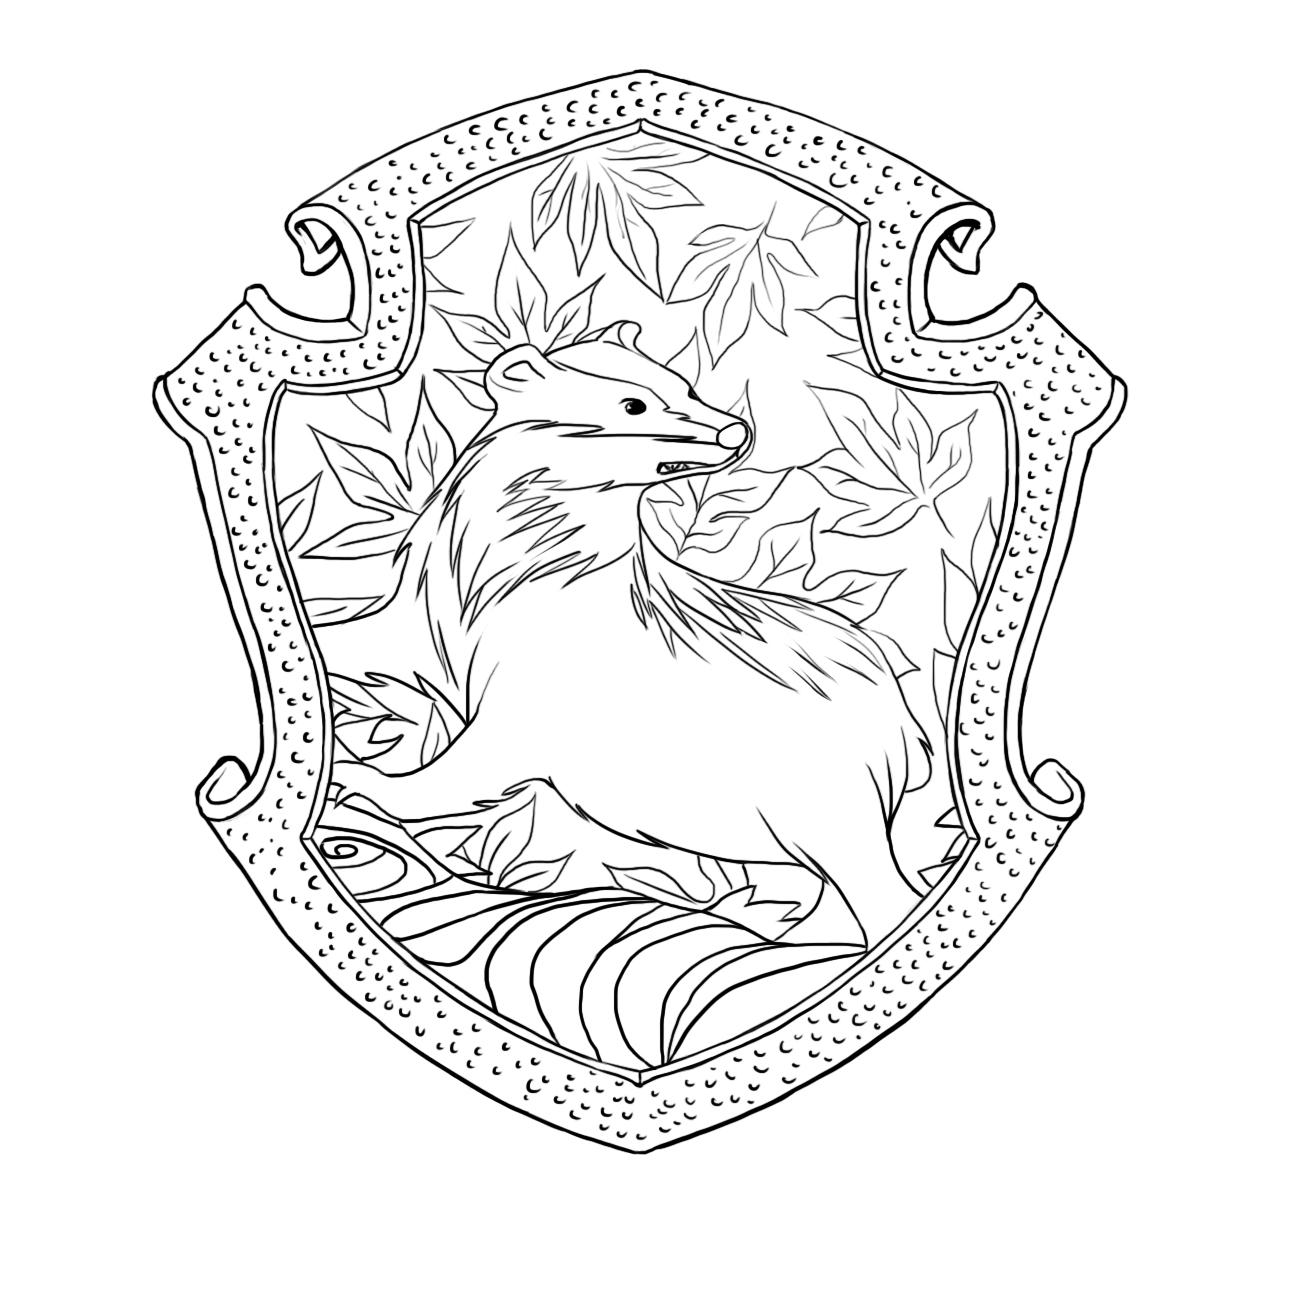 gryffindor crest coloring pages - photo#24